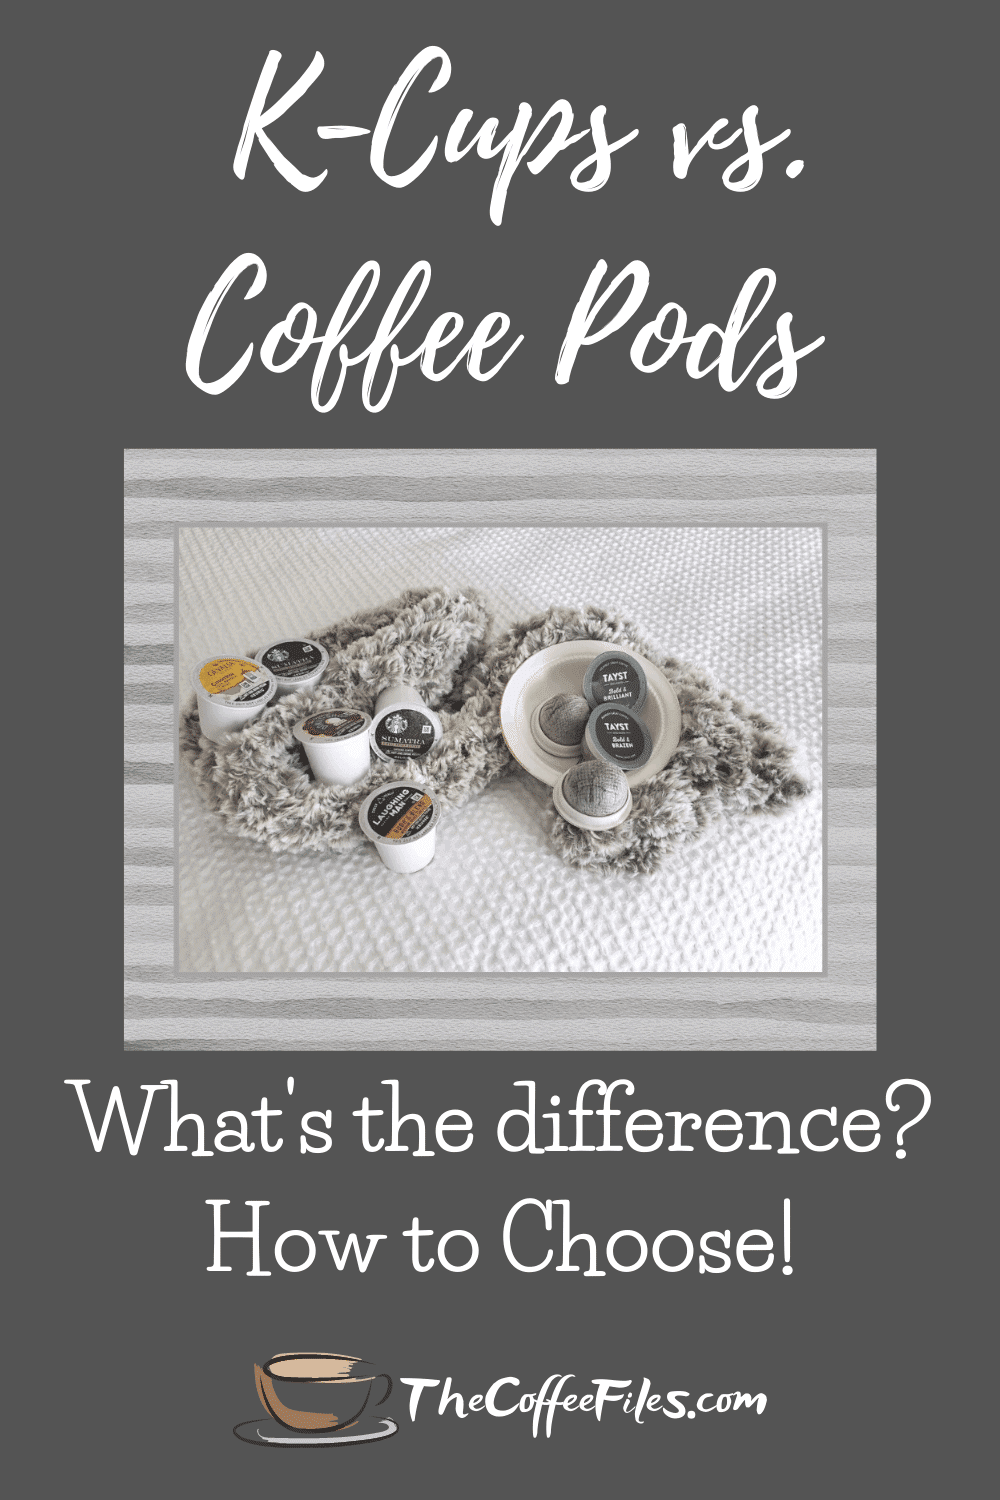 k cups vs pods - whats the difference